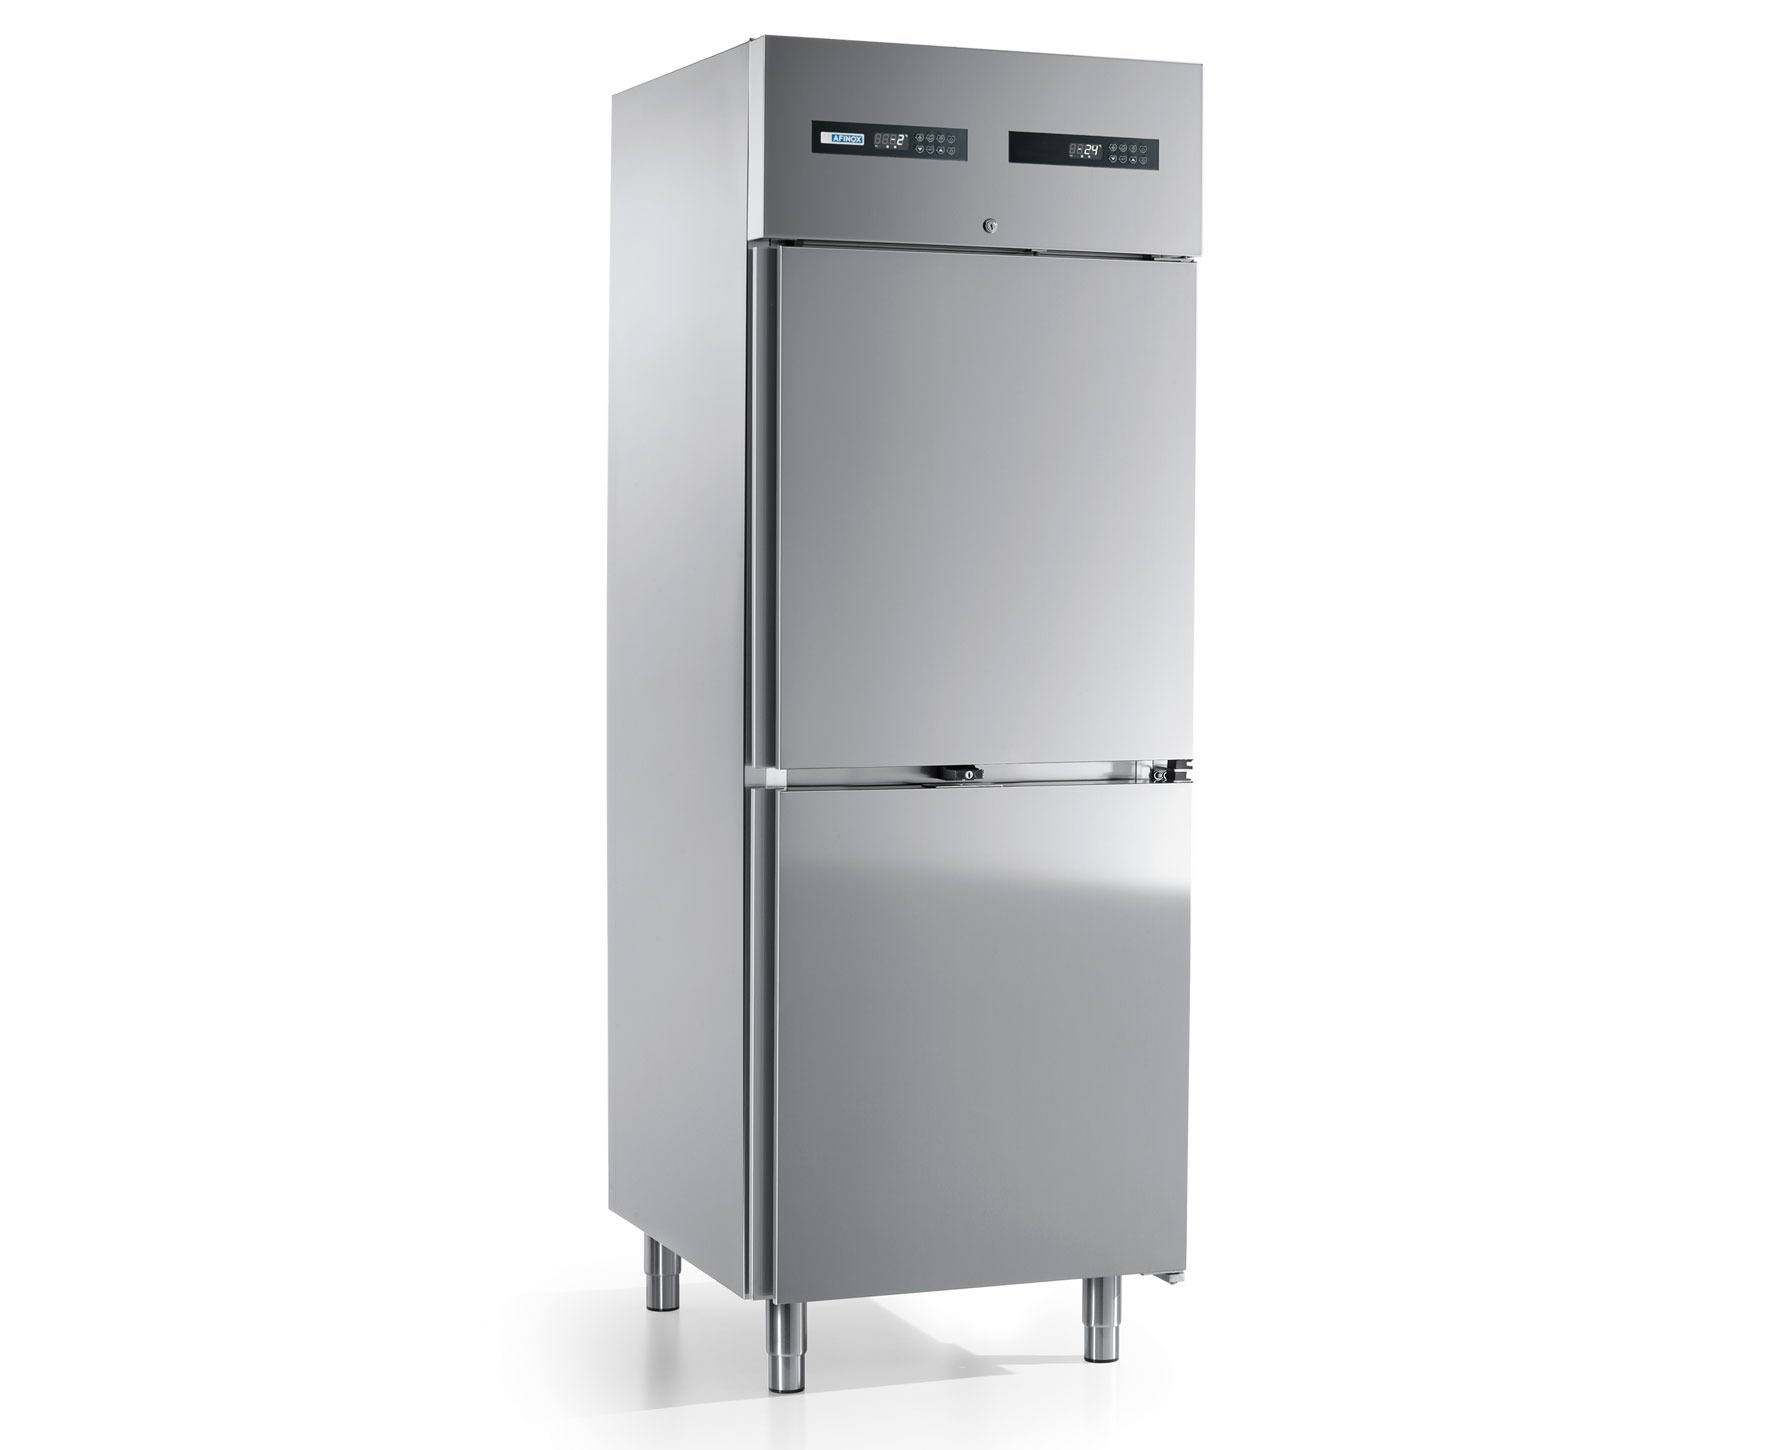 refrigerated cabinets - storage of processed food and raw materials